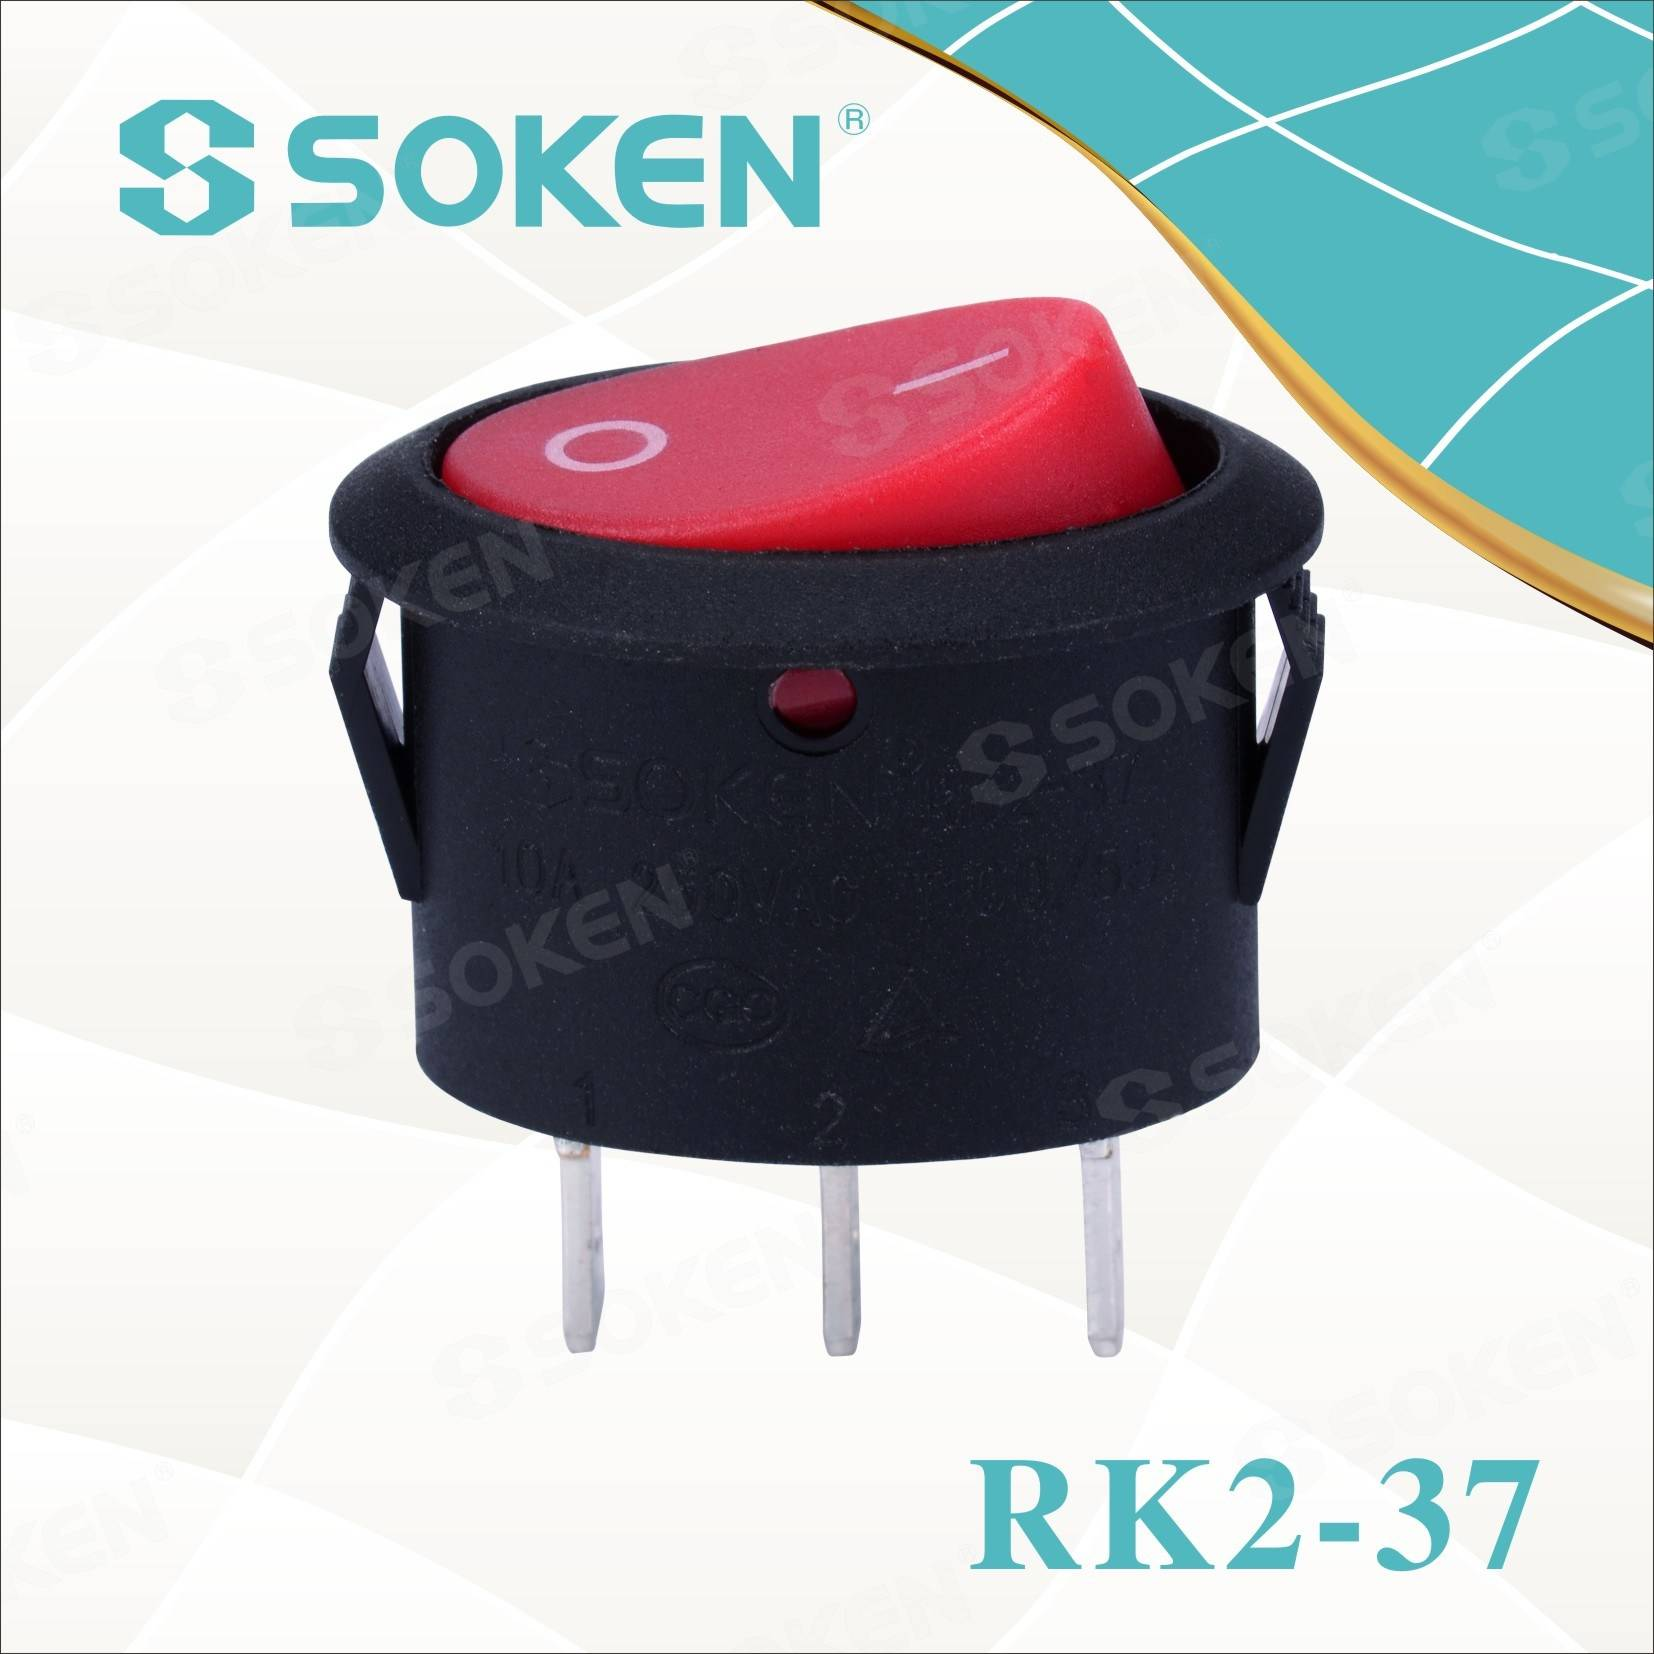 Rk2-37A Switch Oval Rocker